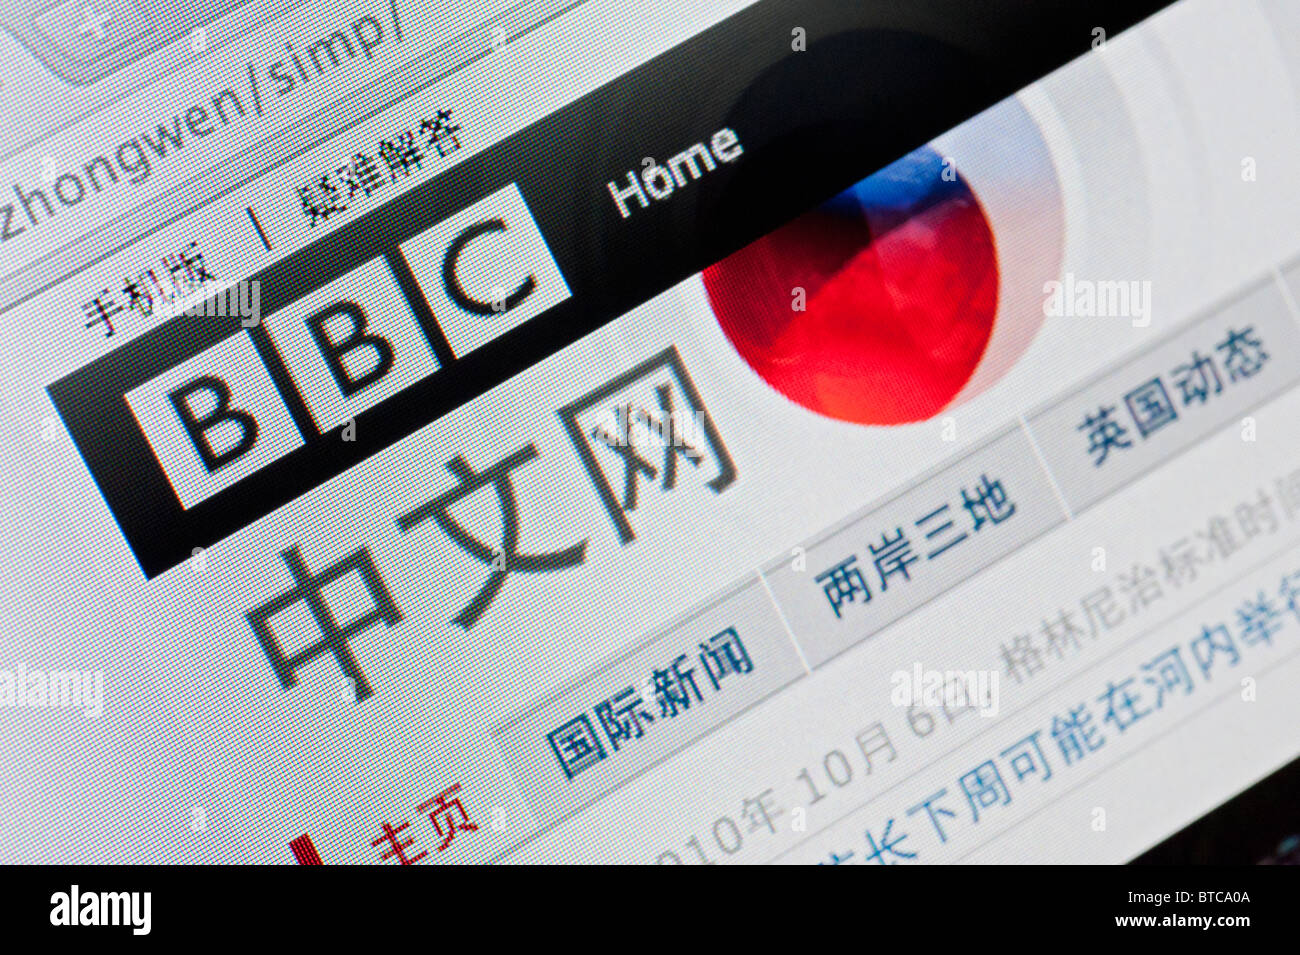 Detail of screenshot from website of BBC News Chinese television channel homepage - Stock Image